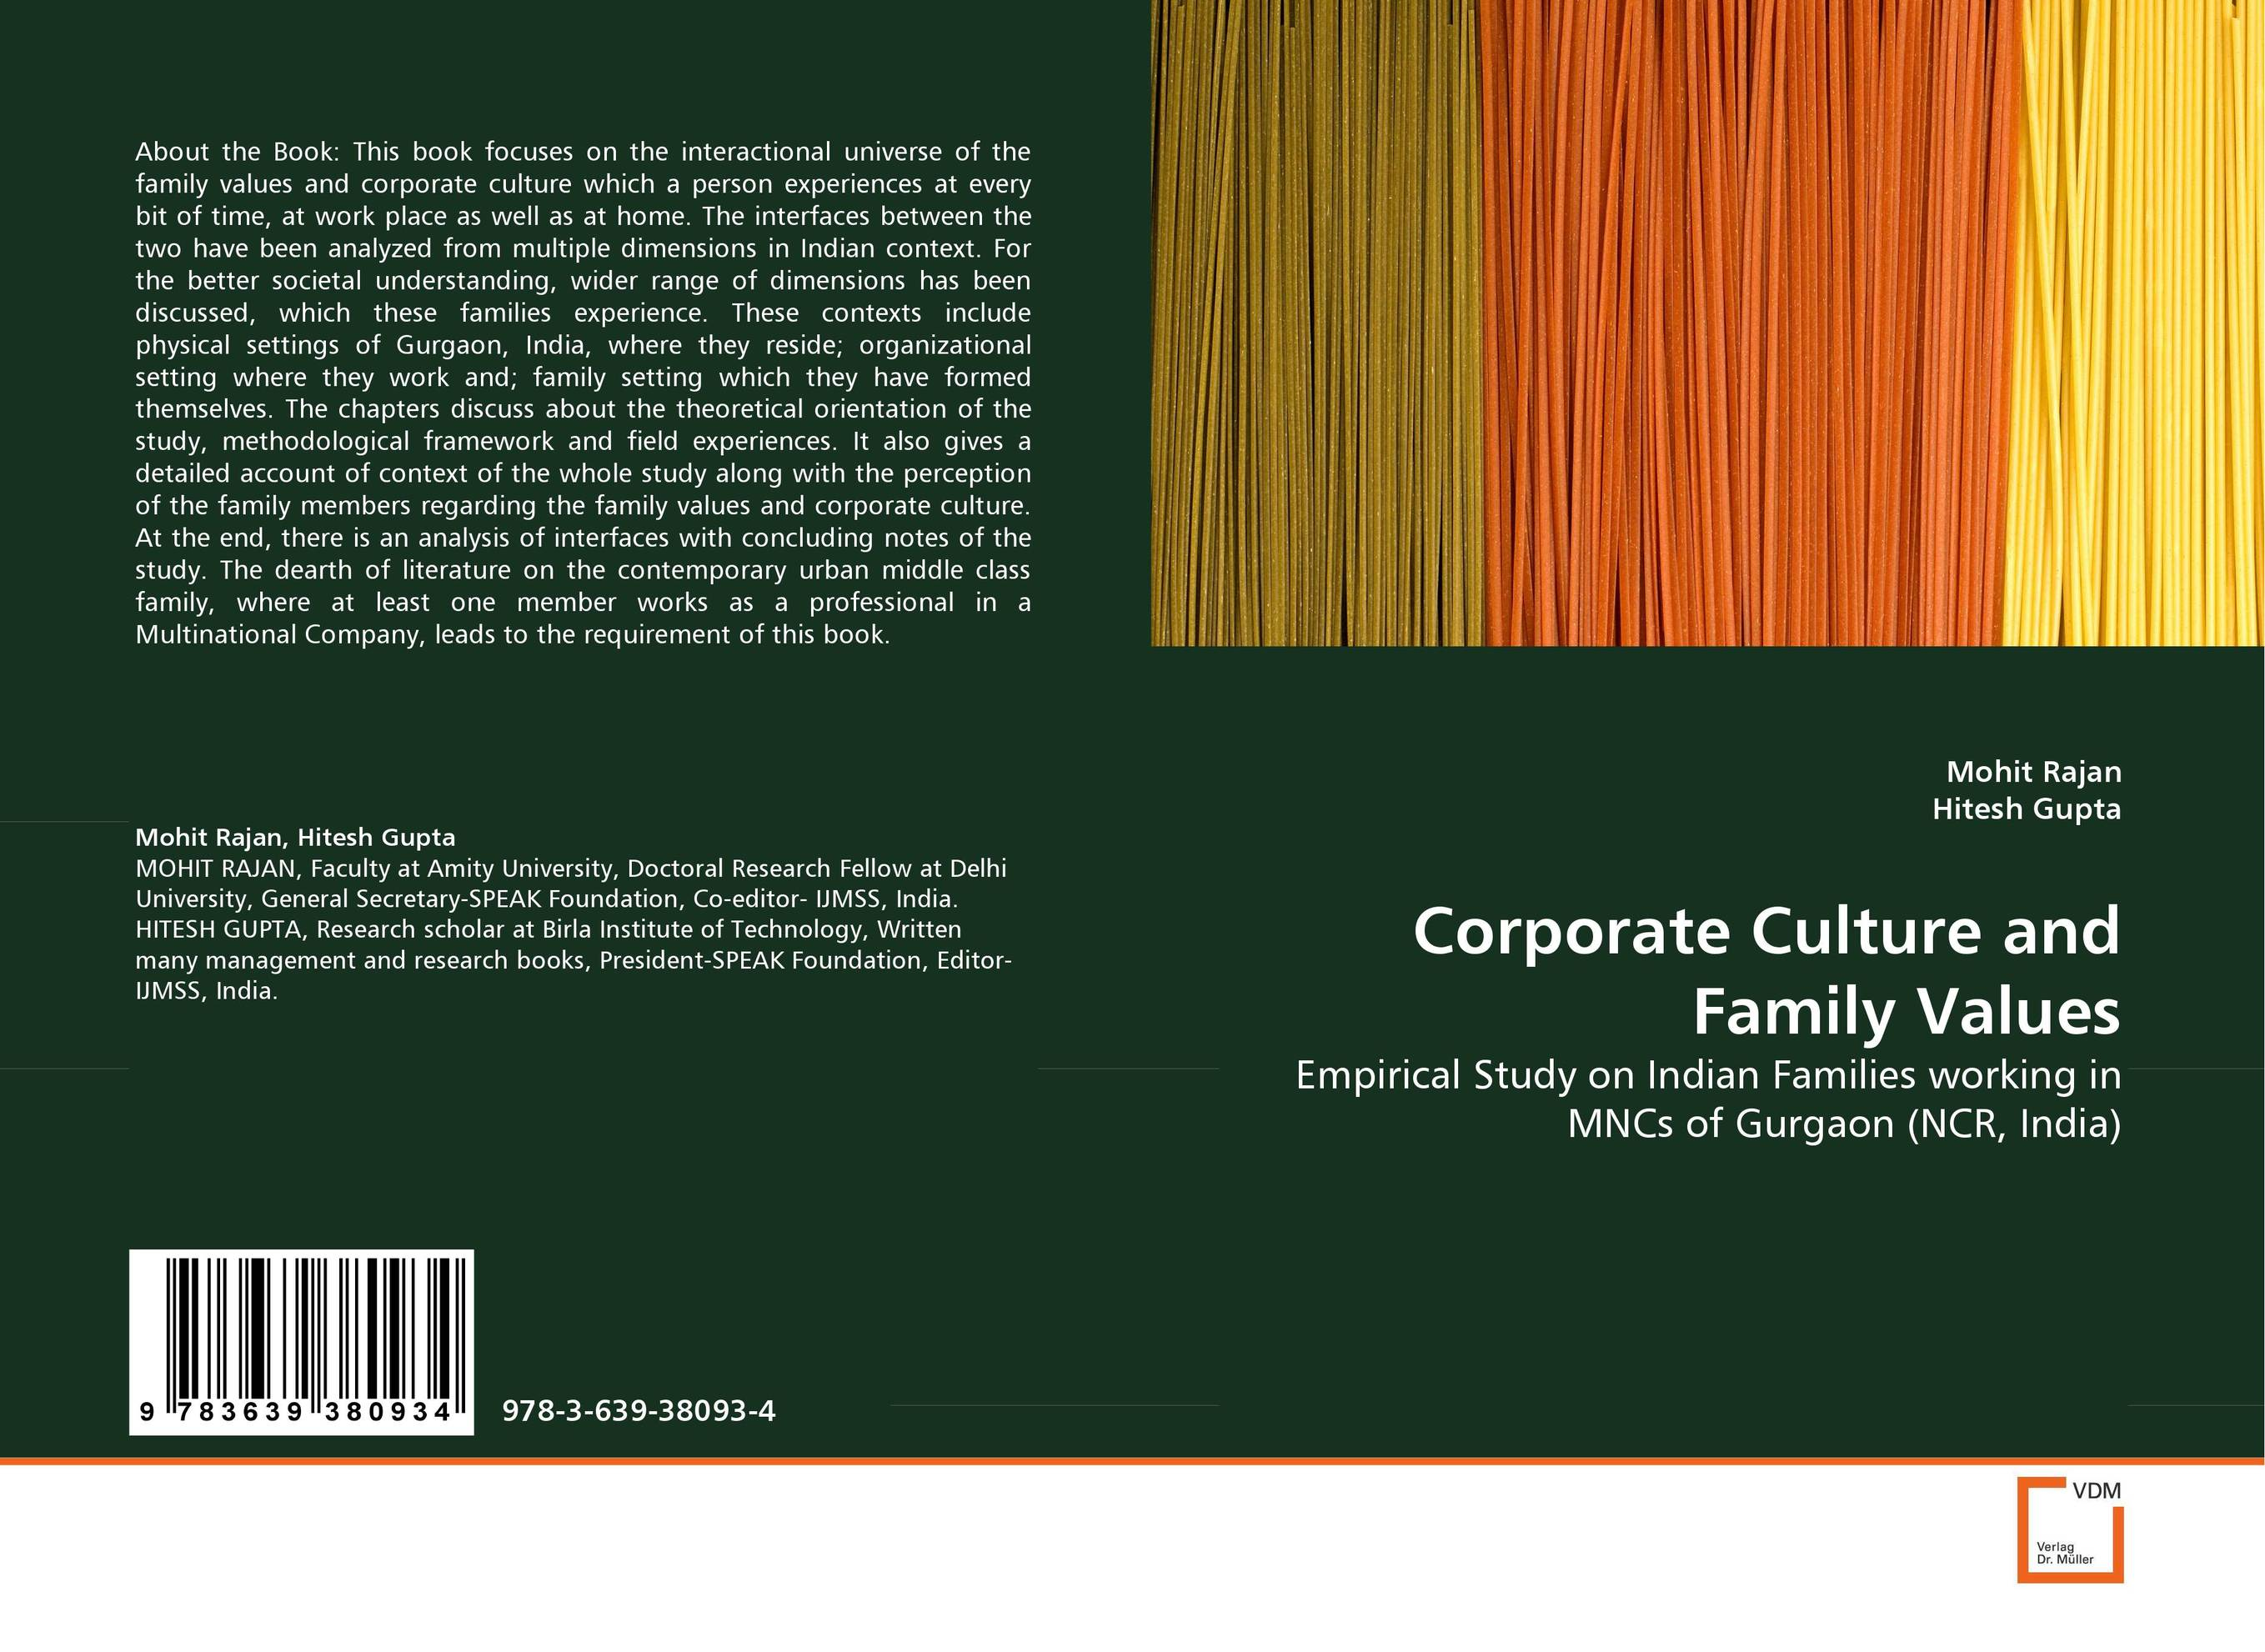 Corporate Culture and Family Values